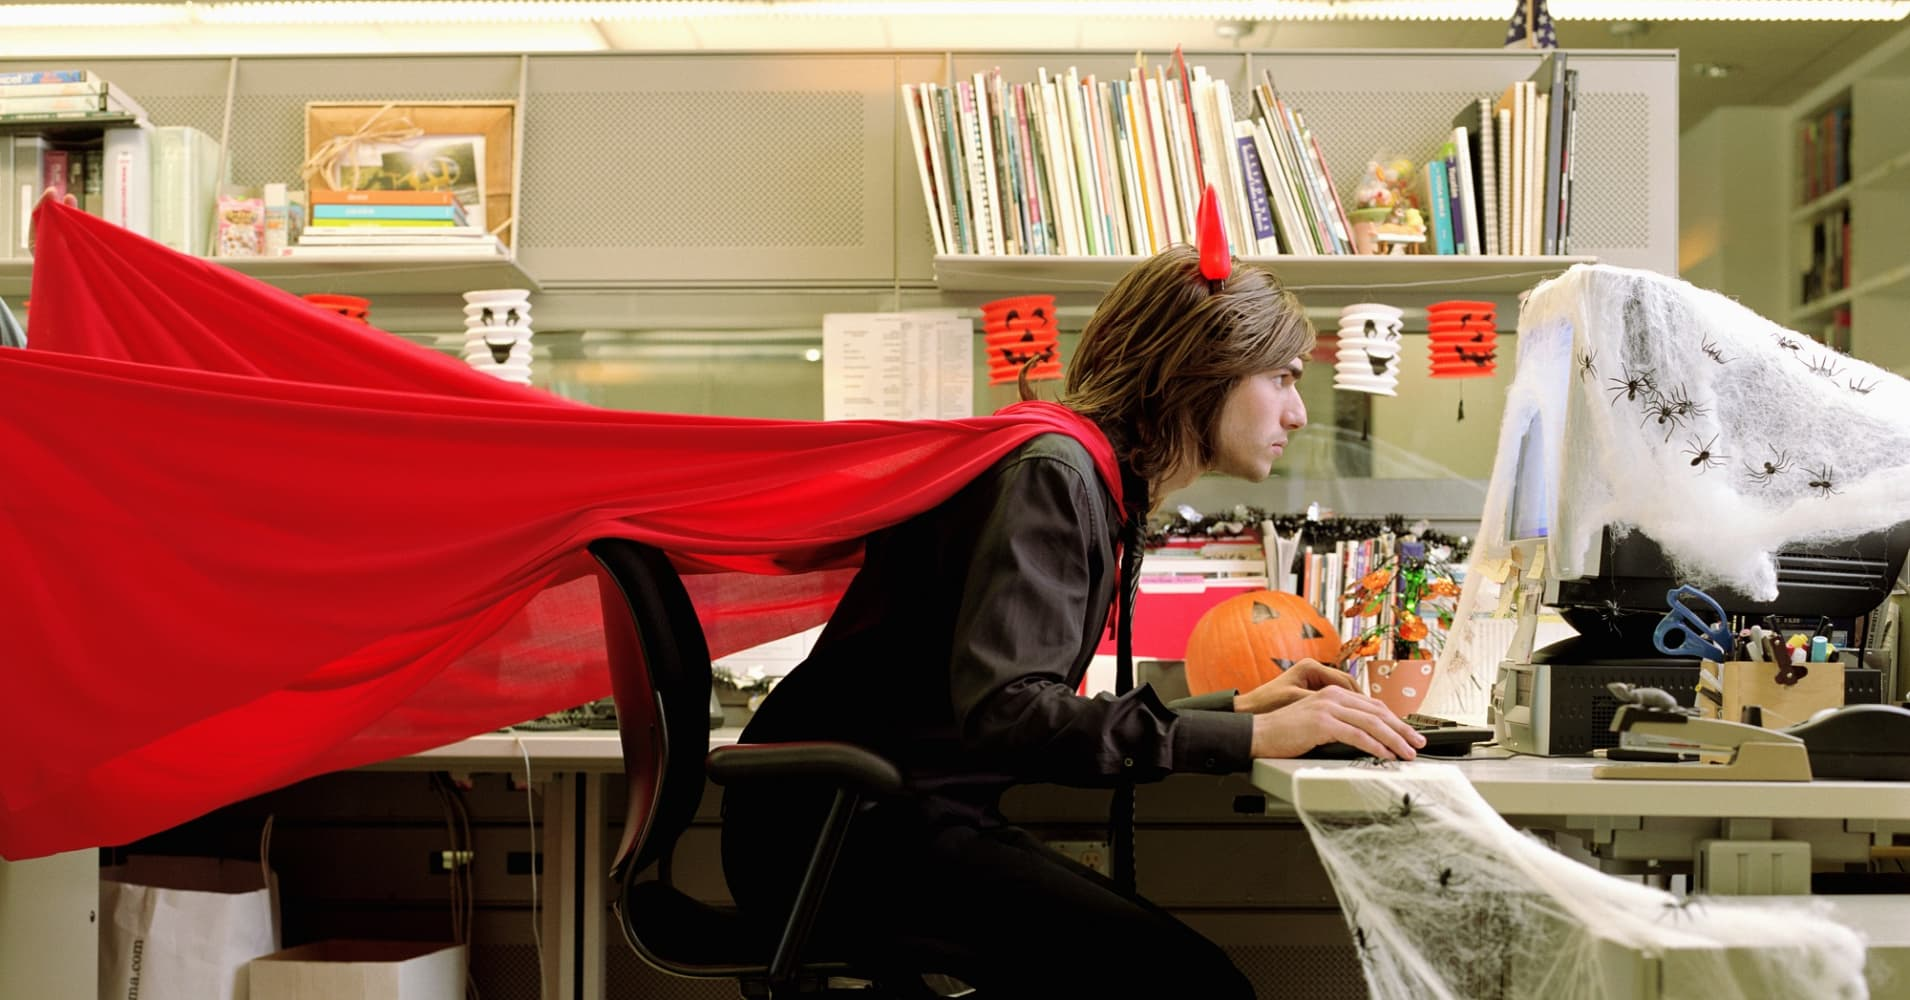 Why wearing a Halloween costume to work may make you happier